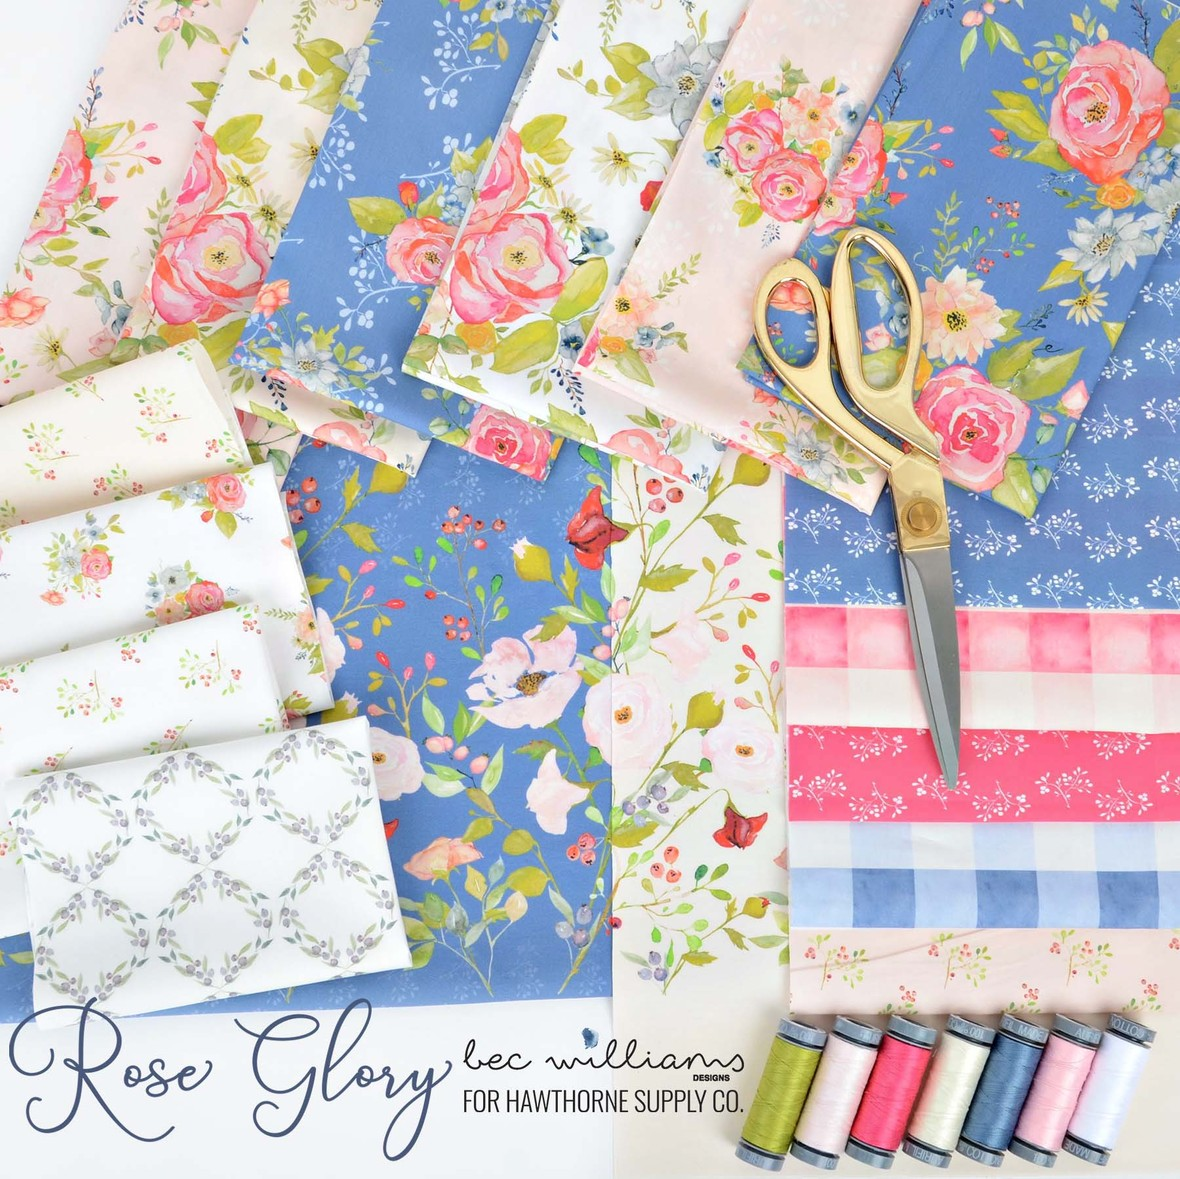 Rose Glory Fabric Poster Bec Williams for Hawthorne Supply Co